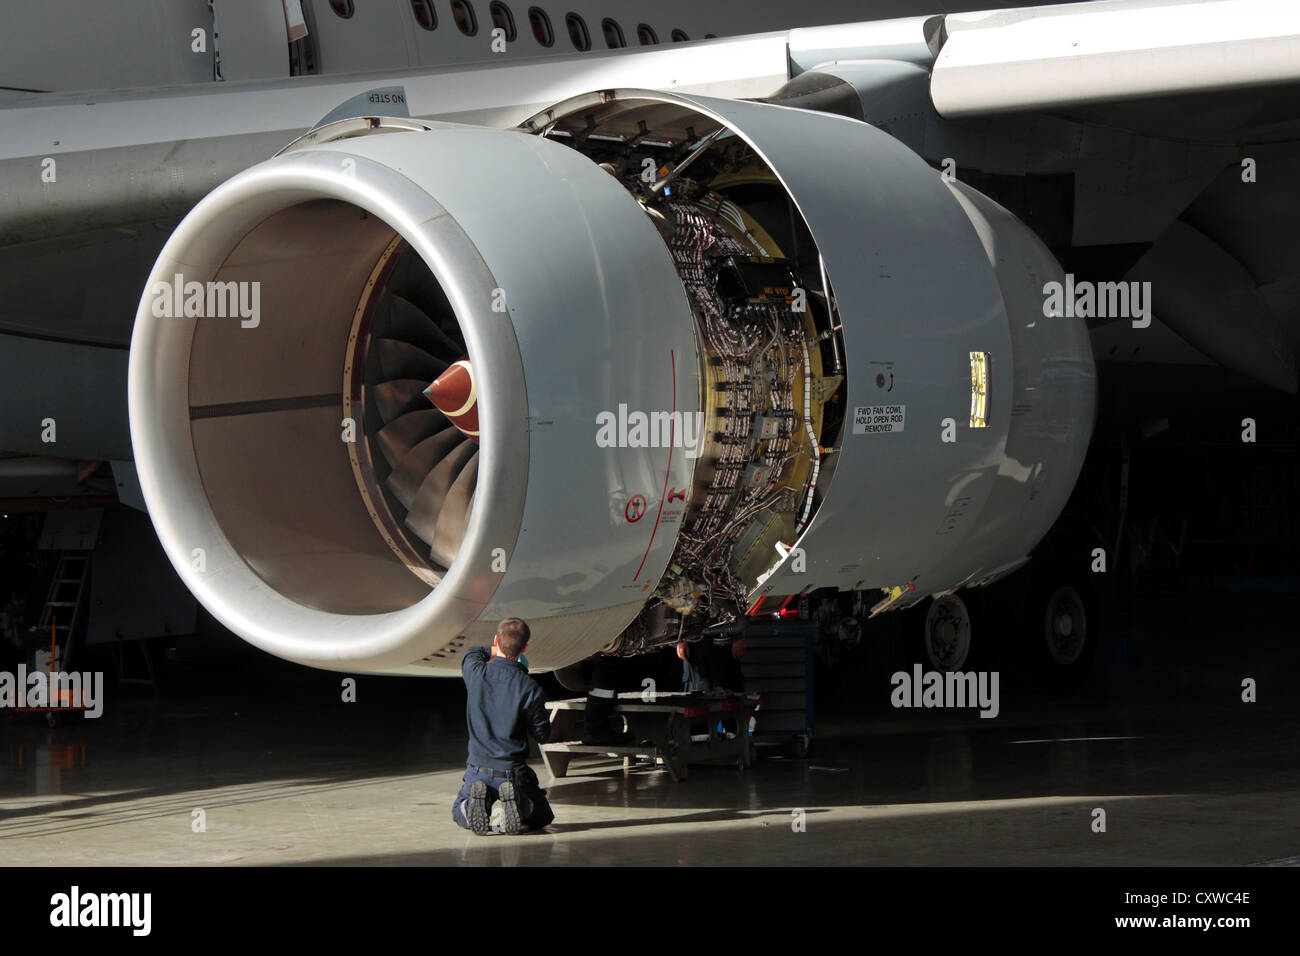 A technician carries out maintenance on a Rolls-Royce Trent 500 aircraft jet engine. Aviation engineering, knowledge - Stock Image